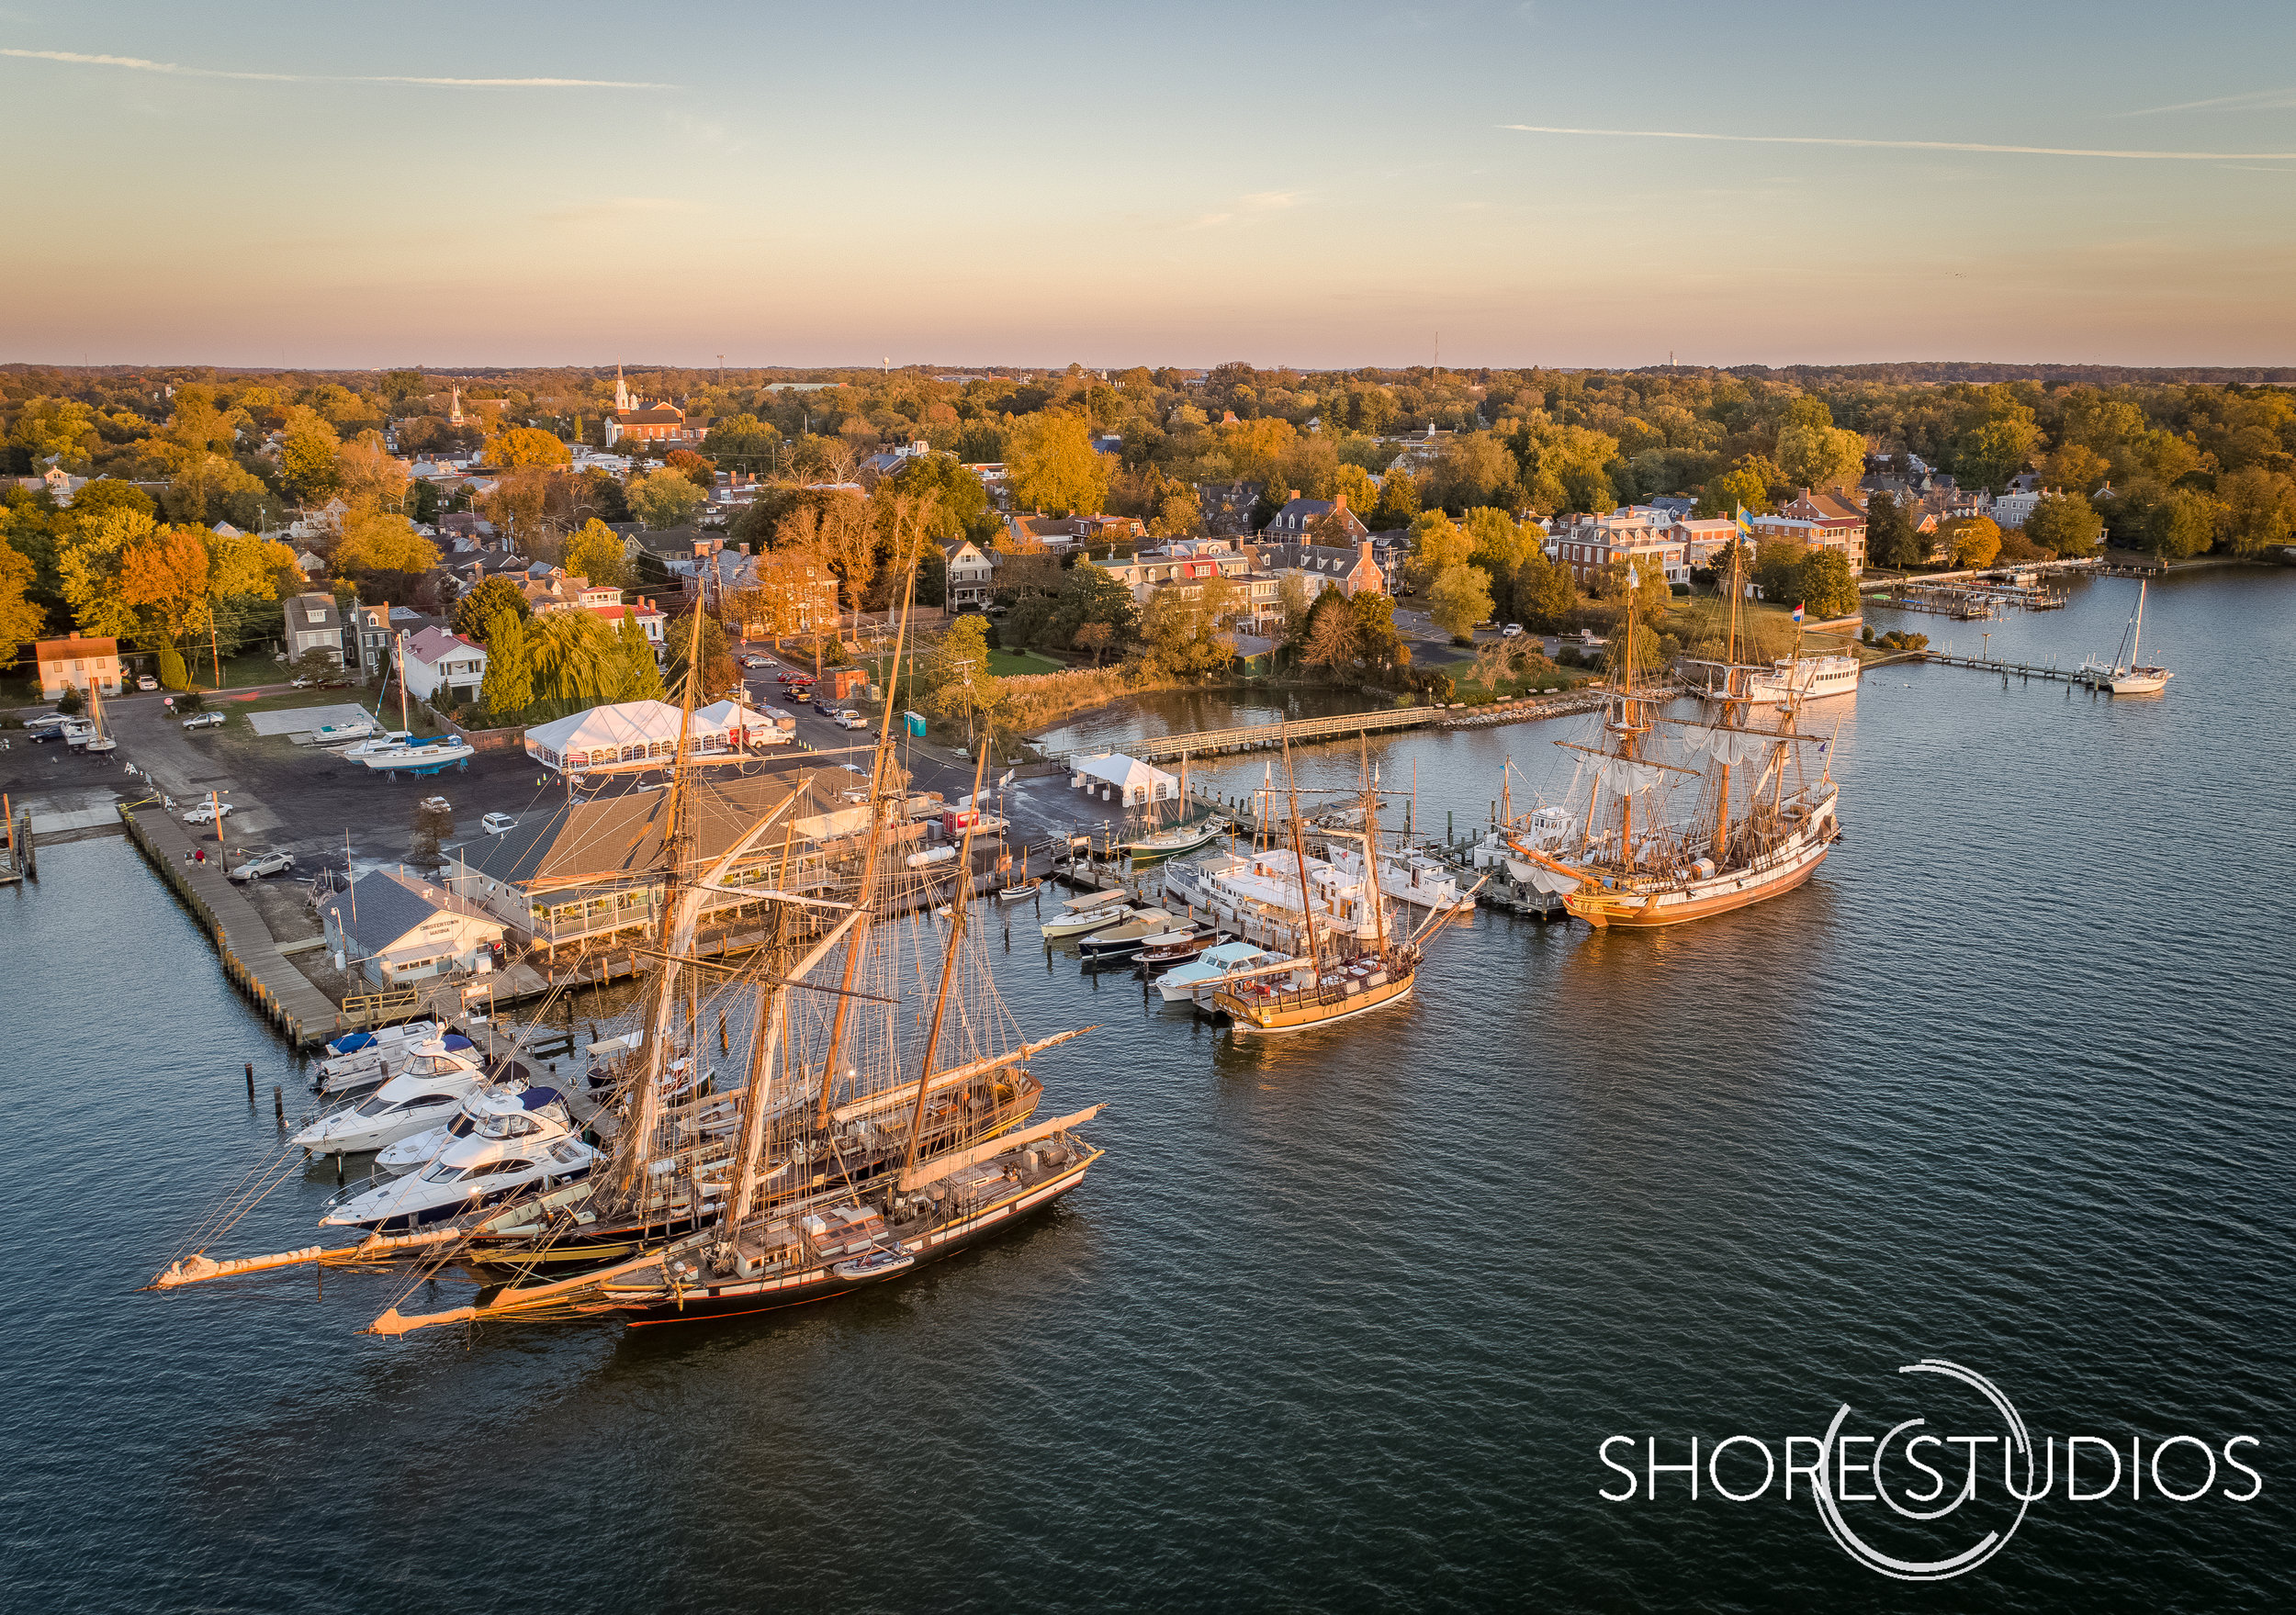 Aerial photo of Sultana Education Foundation's   Downrigging Weekend Tall Ship Festival   in Chestertown, MD